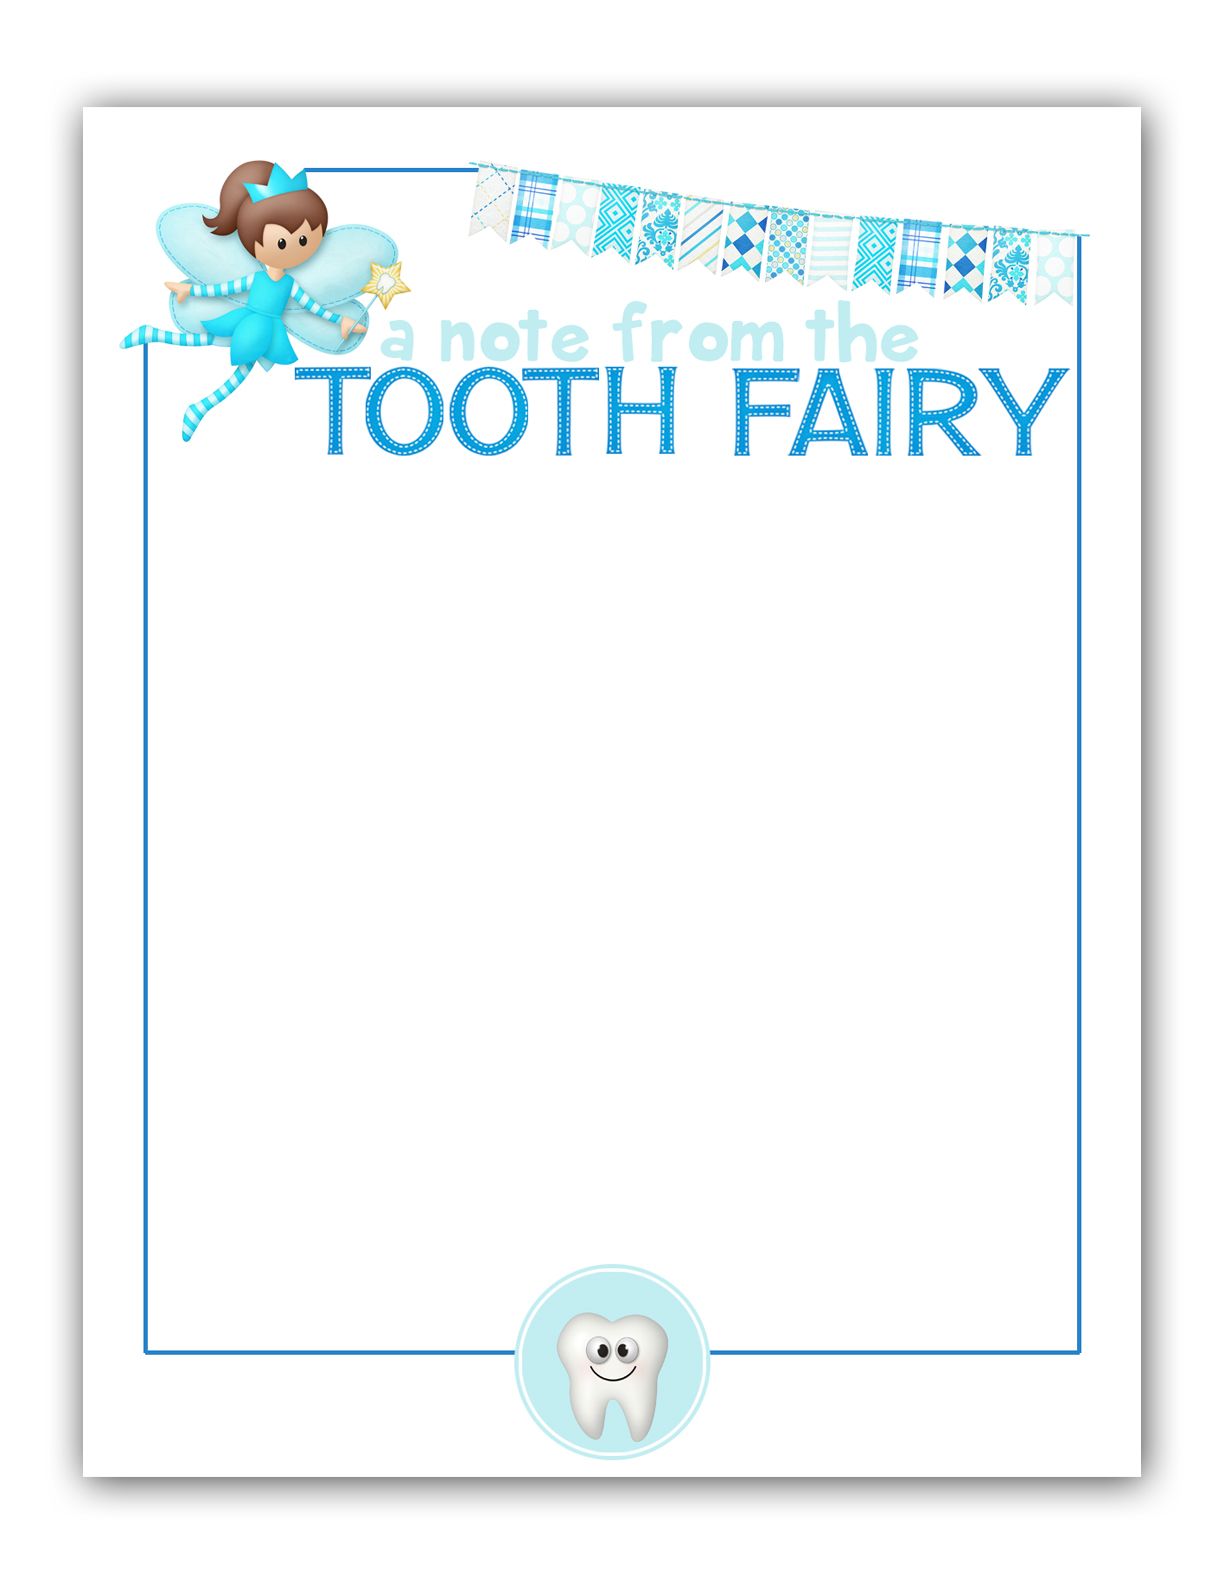 graphic about Tooth Fairy Printable named MK Styles Blog site: Teeth Fairy Stationary - No cost Printable